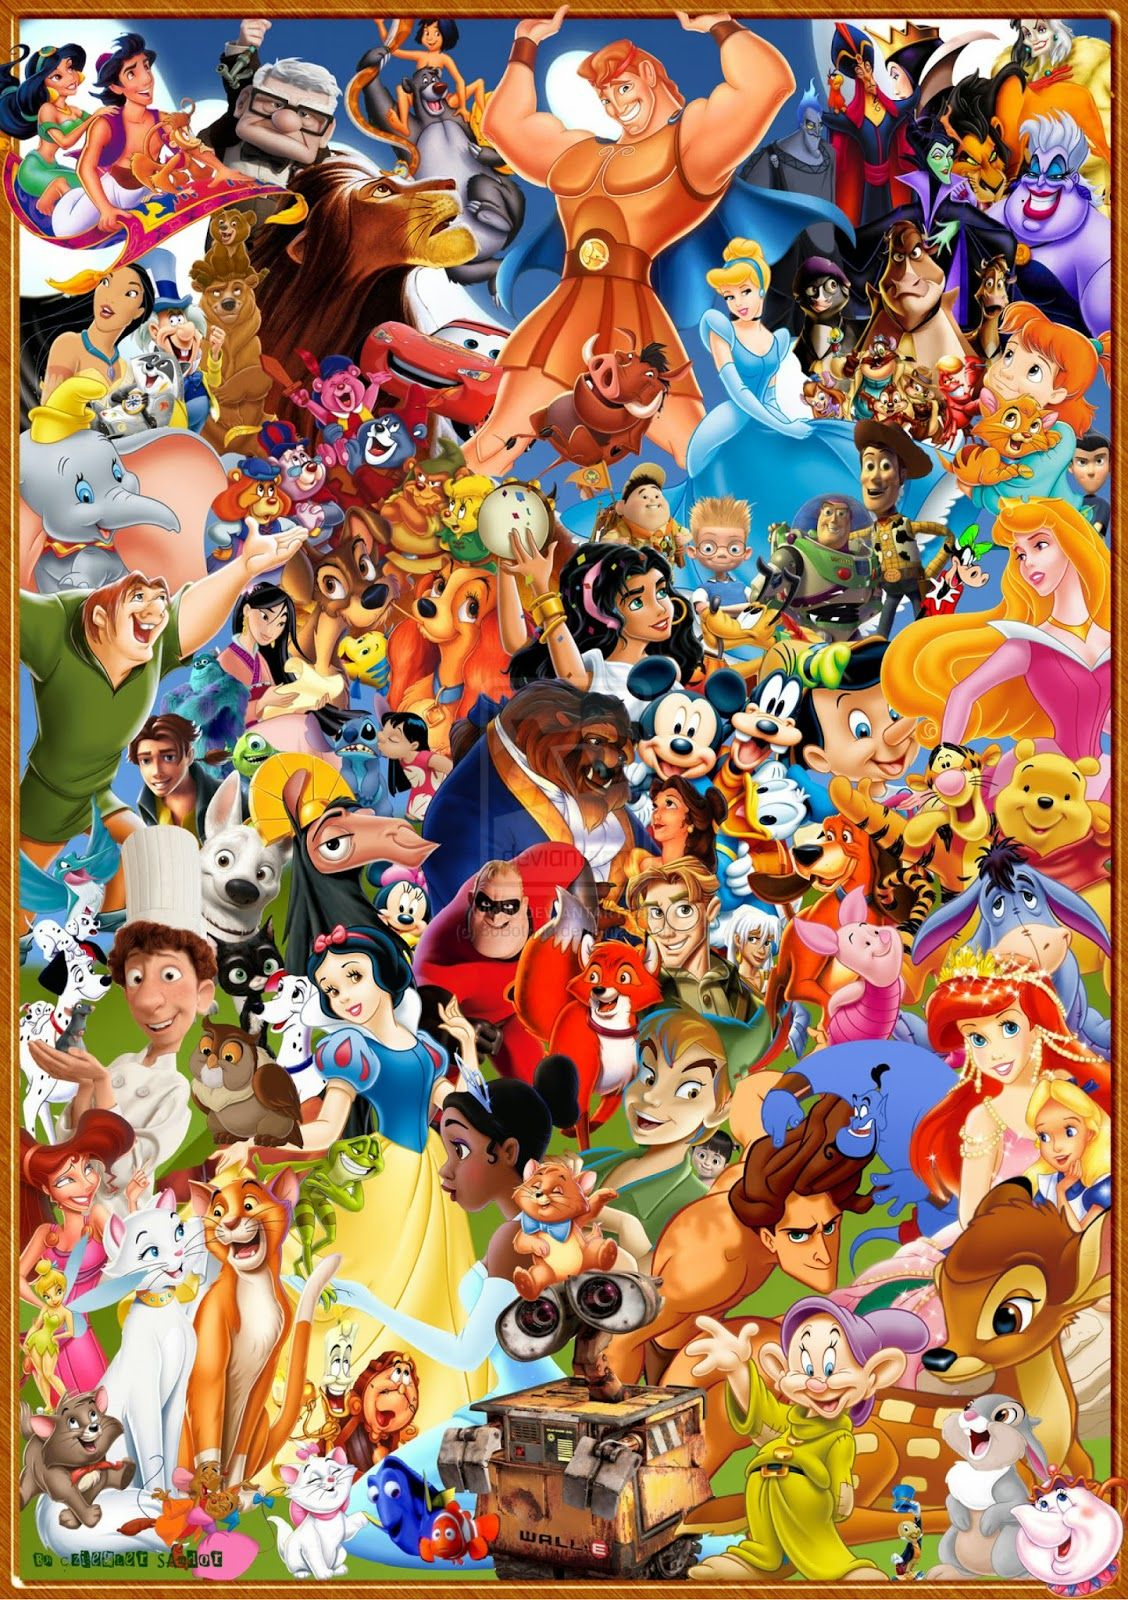 Shivayya A With Images Disney Collage Disney Drawings Disney